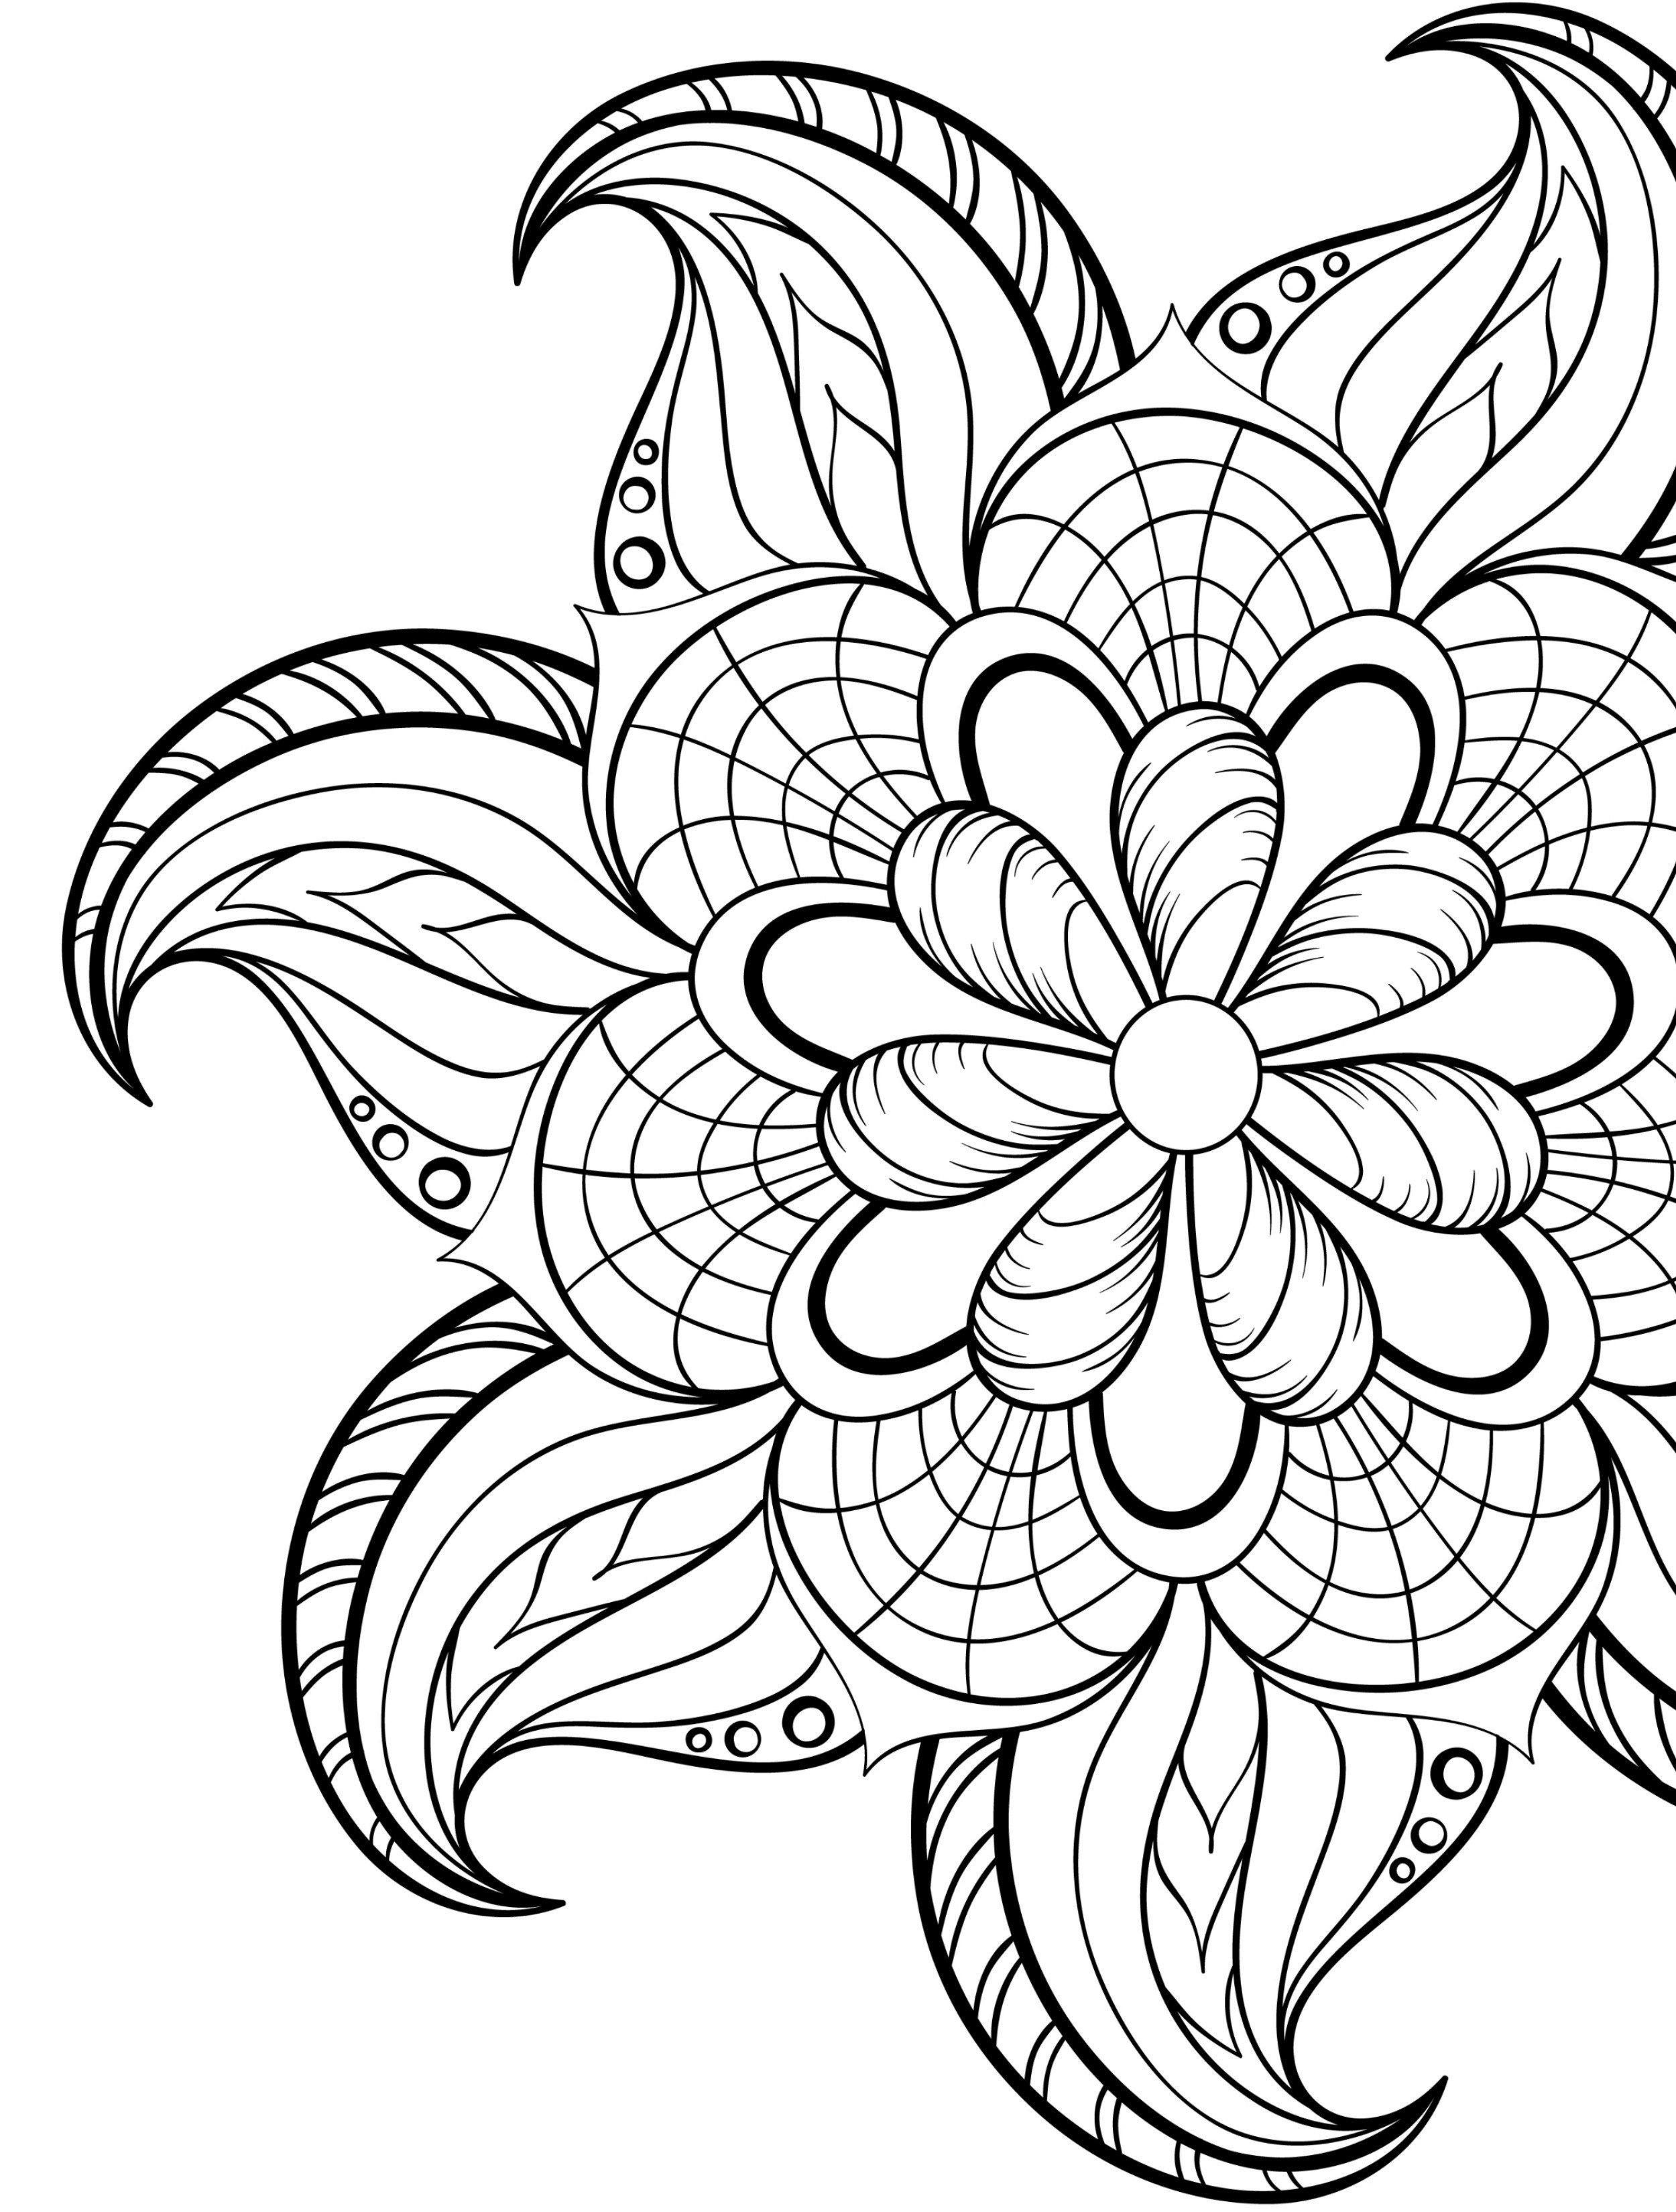 20 Gorgeous Free Printable Adult Coloring Pages … | Coloring